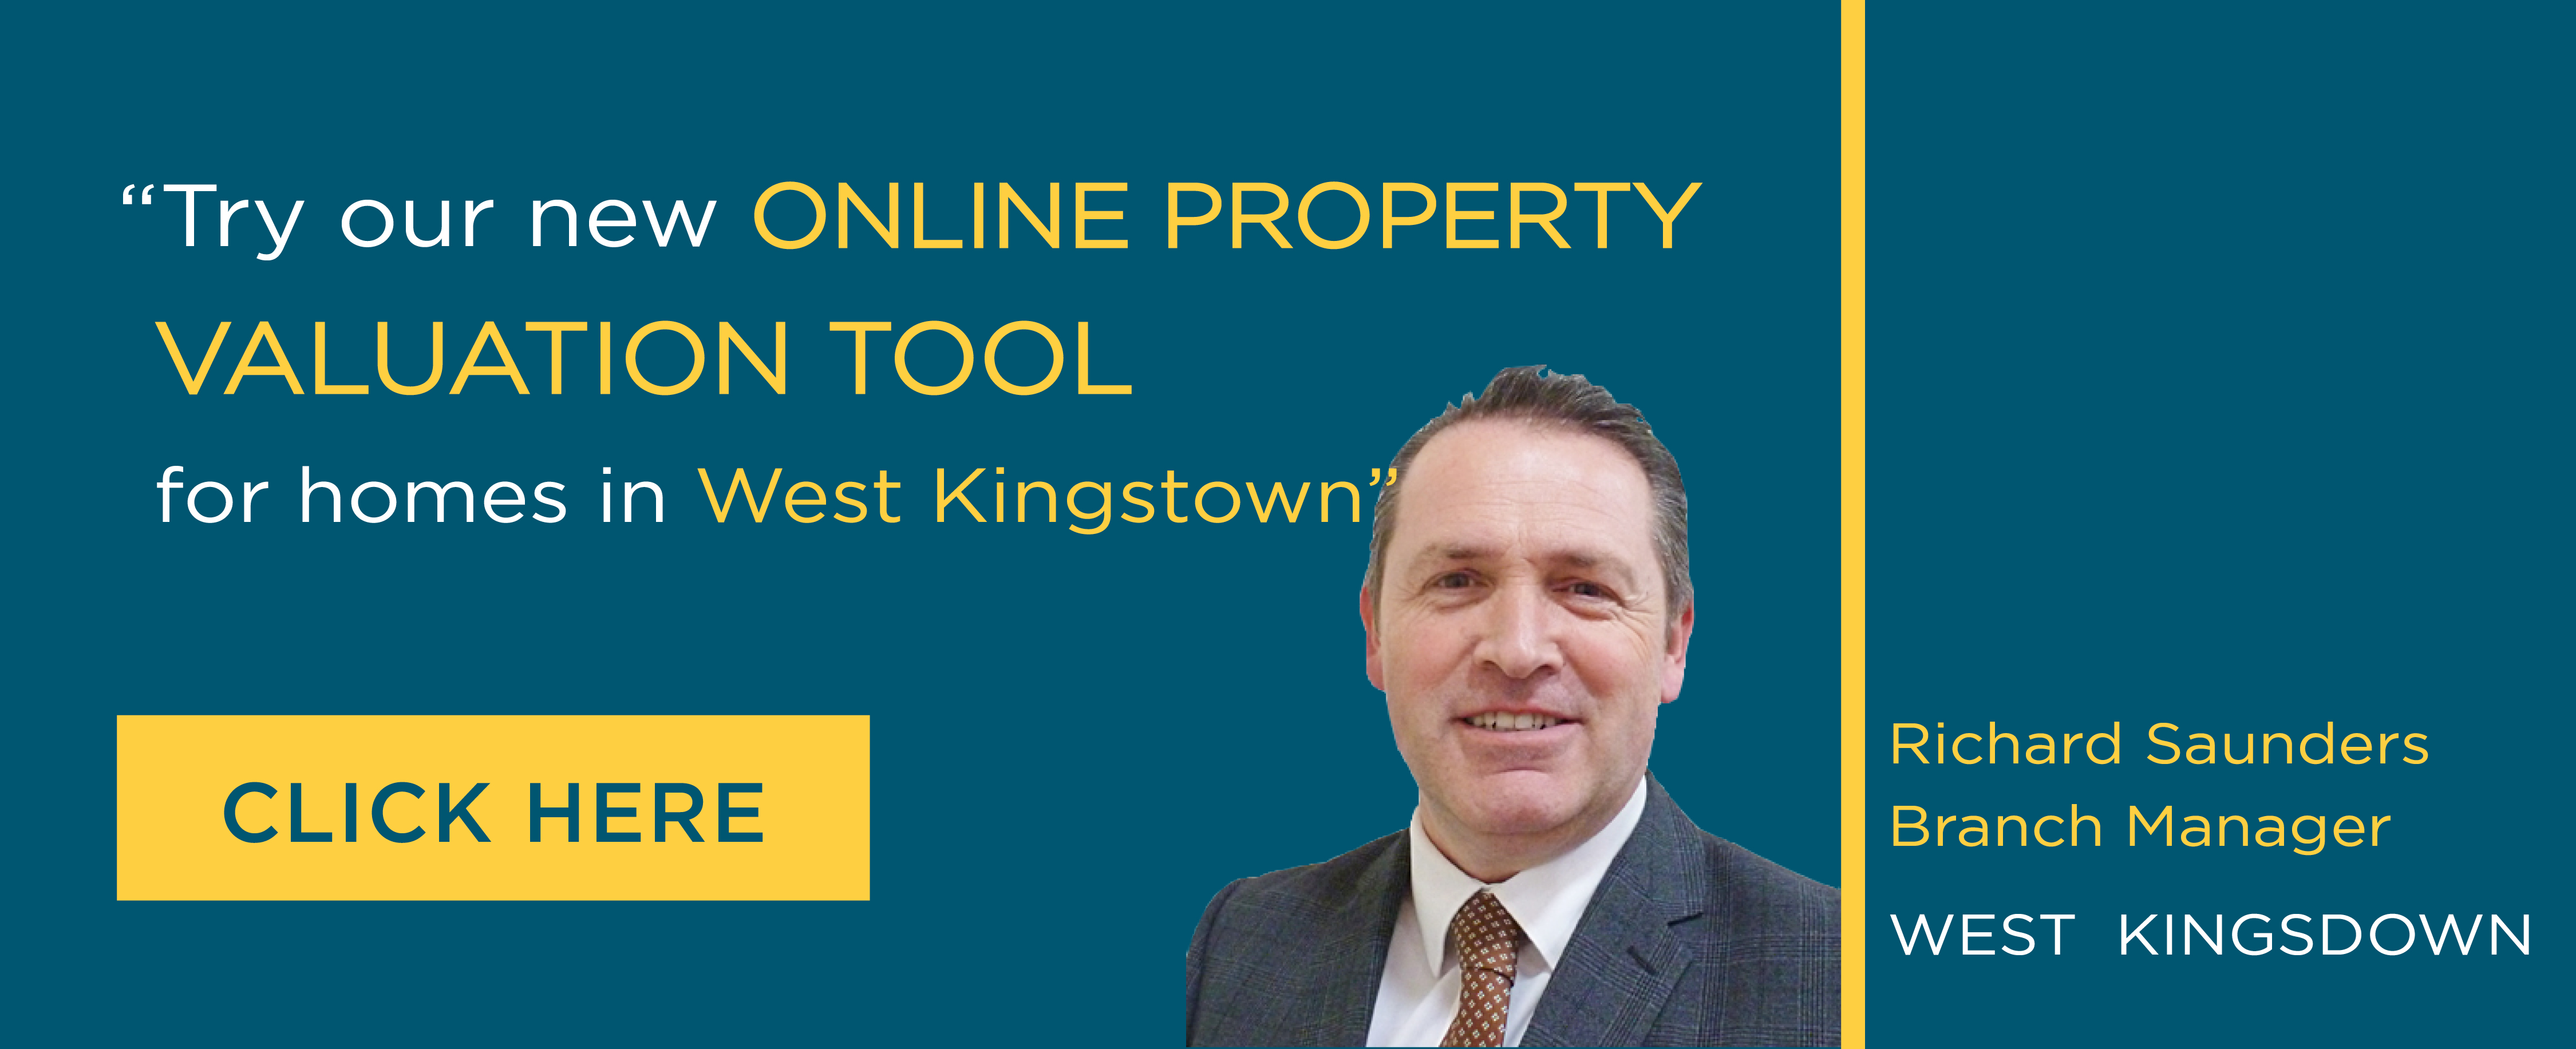 Online Valuation Tool website banner West Kingsdown